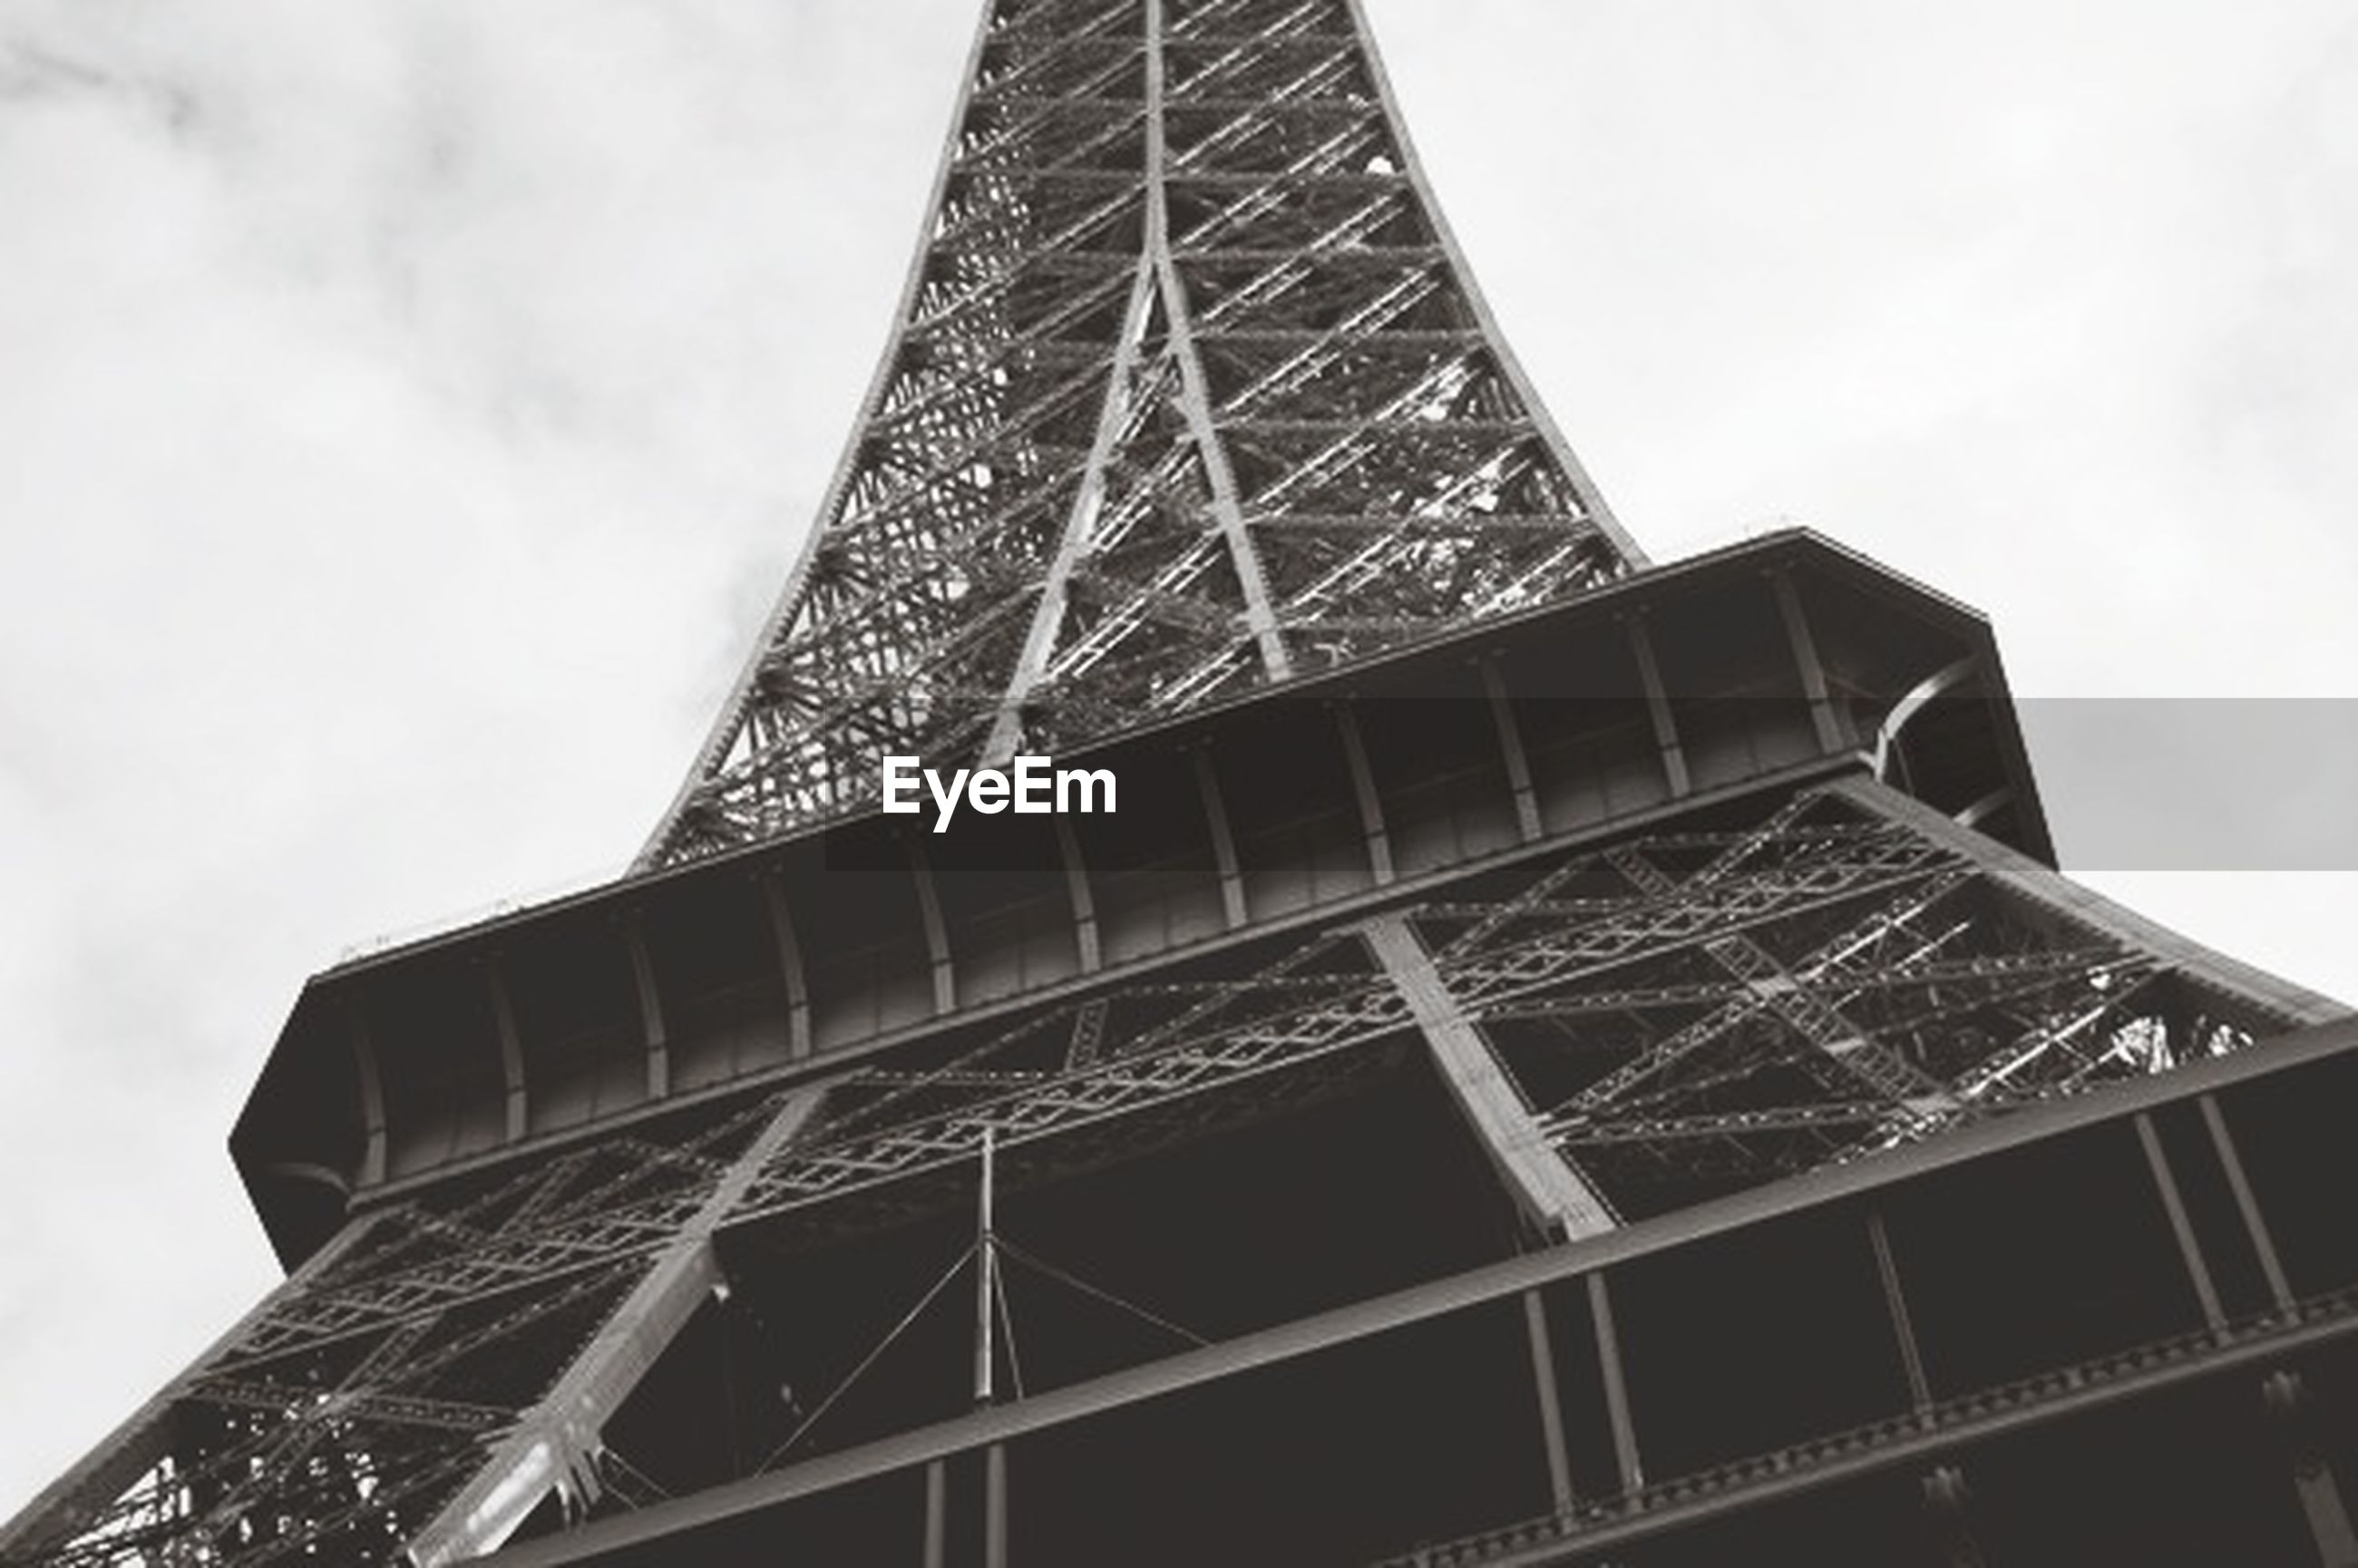 low angle view, architecture, built structure, tall - high, tower, sky, building exterior, famous place, international landmark, capital cities, travel destinations, modern, skyscraper, tourism, city, architectural feature, eiffel tower, metal, travel, tall